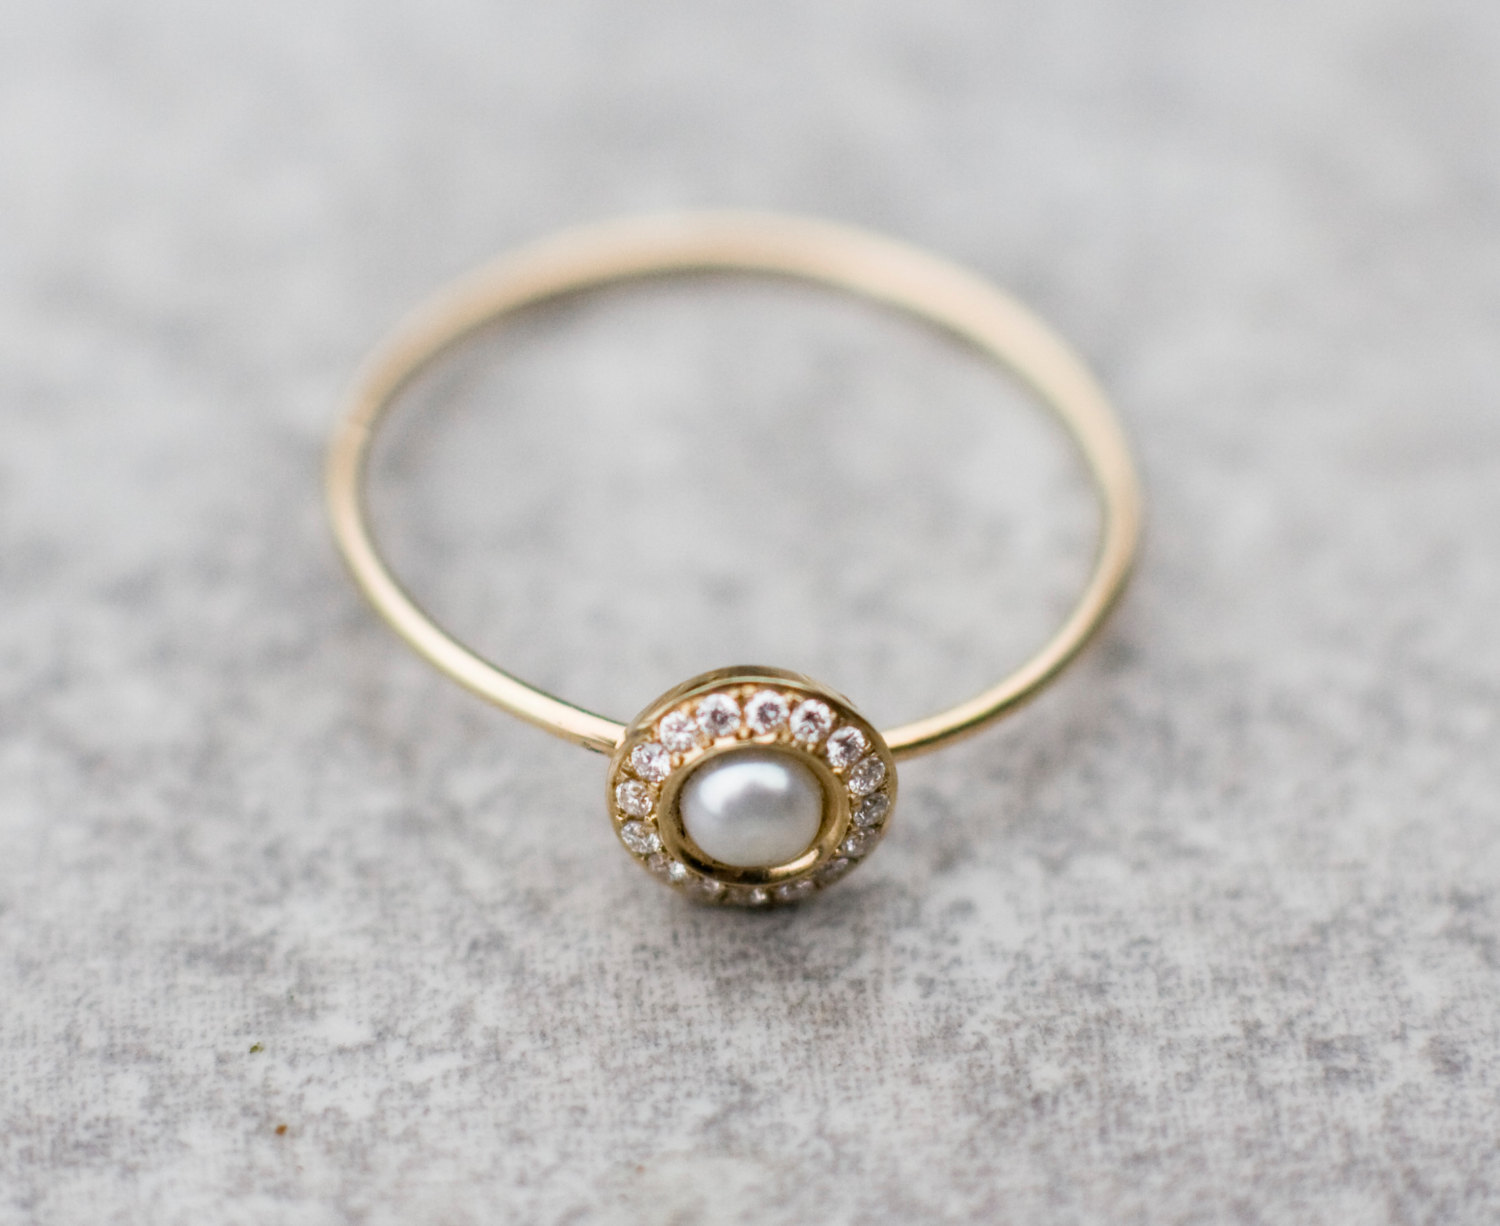 White Pearl Wedding Ring With Diamonds In 14k Gold Engagement Fine Jewelry